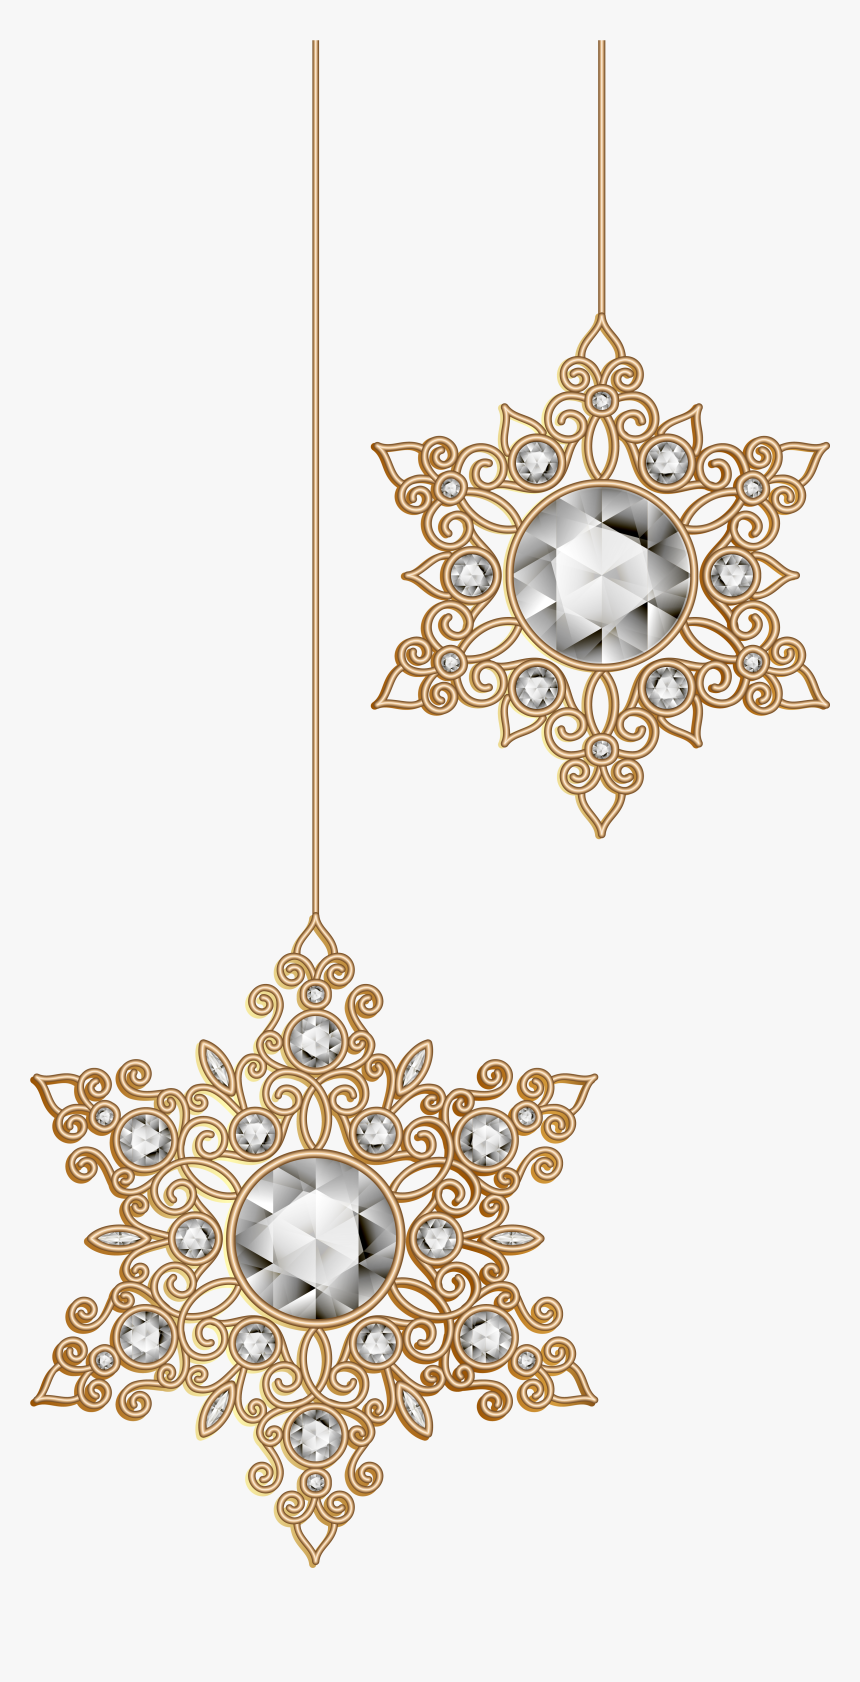 Christmas Snowflakes Ornaments Png Clip Art Image - Christmas Star Ornament Clipart, Transparent Png, Free Download